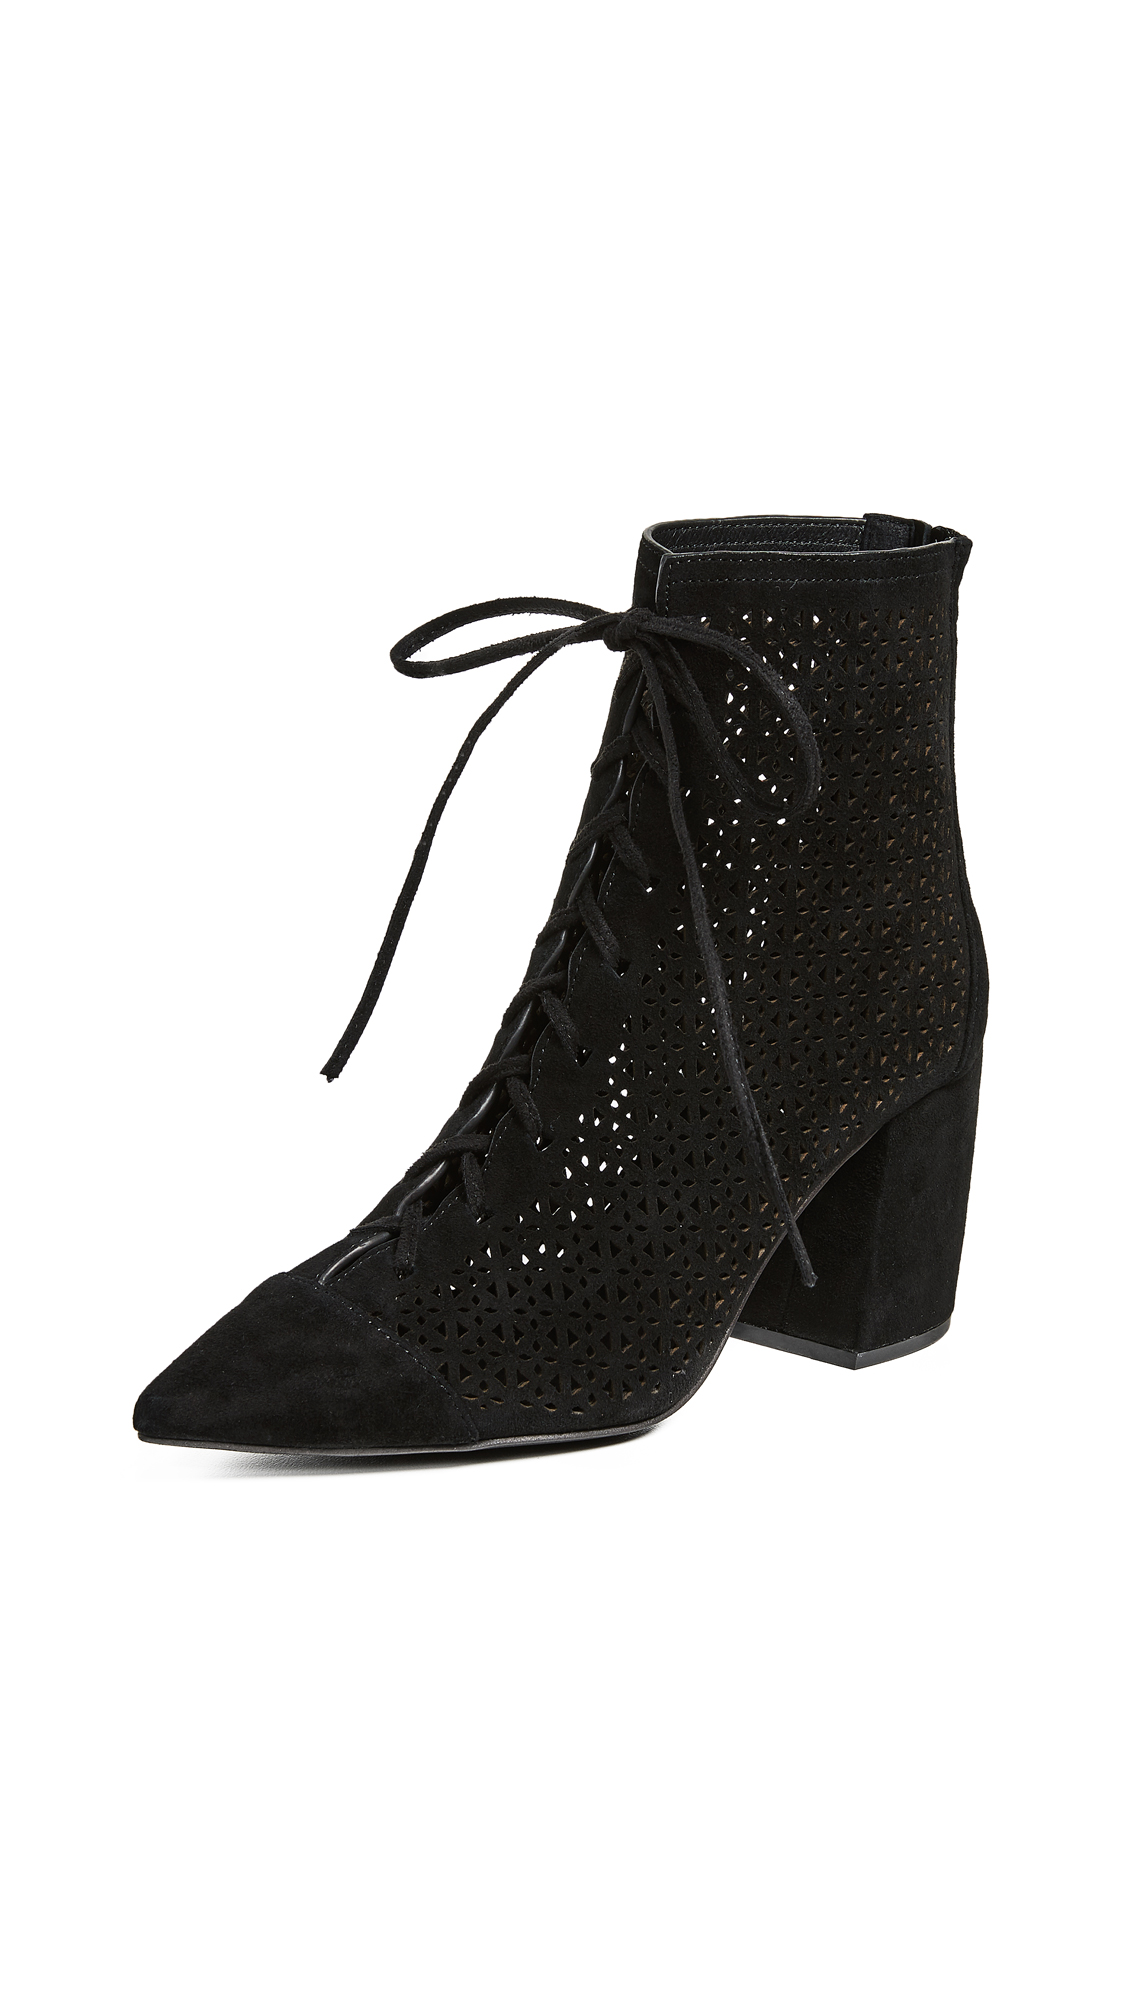 Jeffrey Campbell Finito Booties - Black